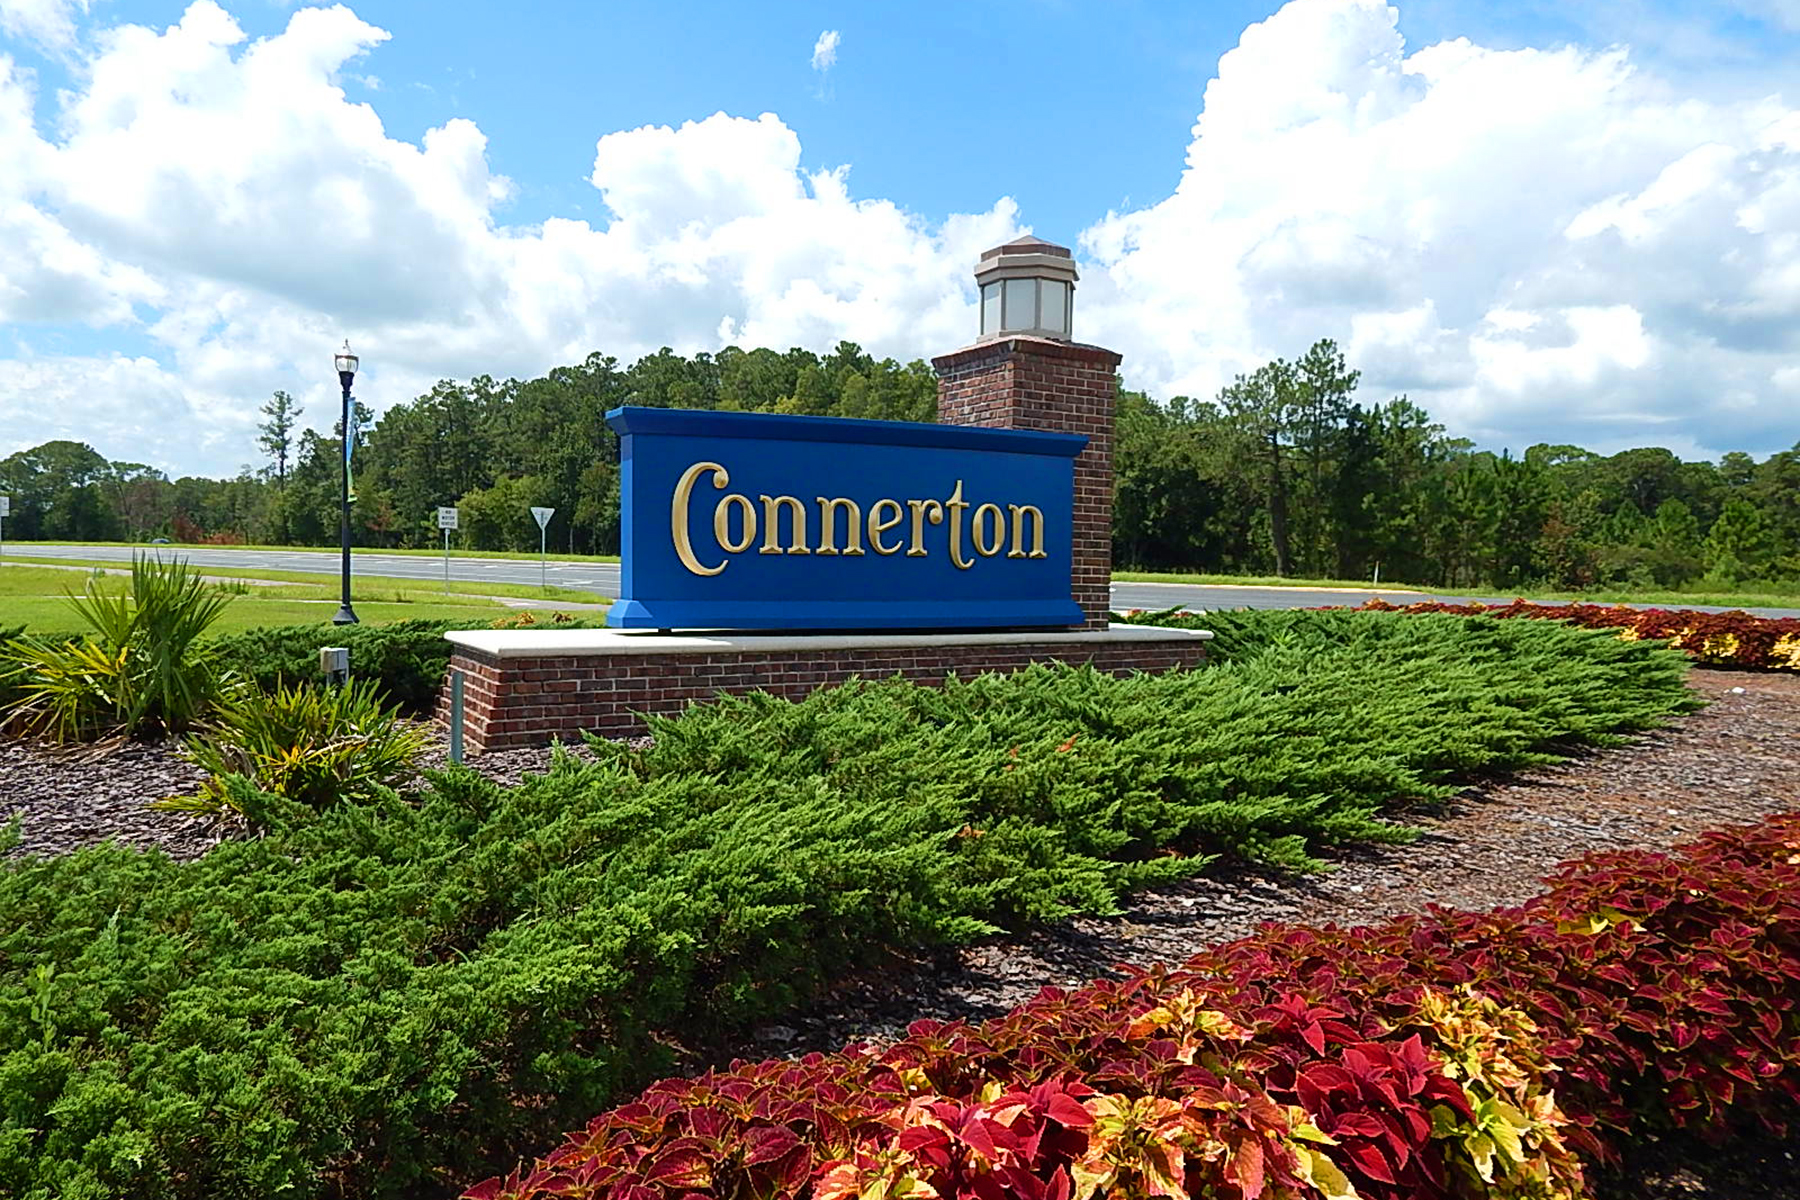 Connerton Entrance